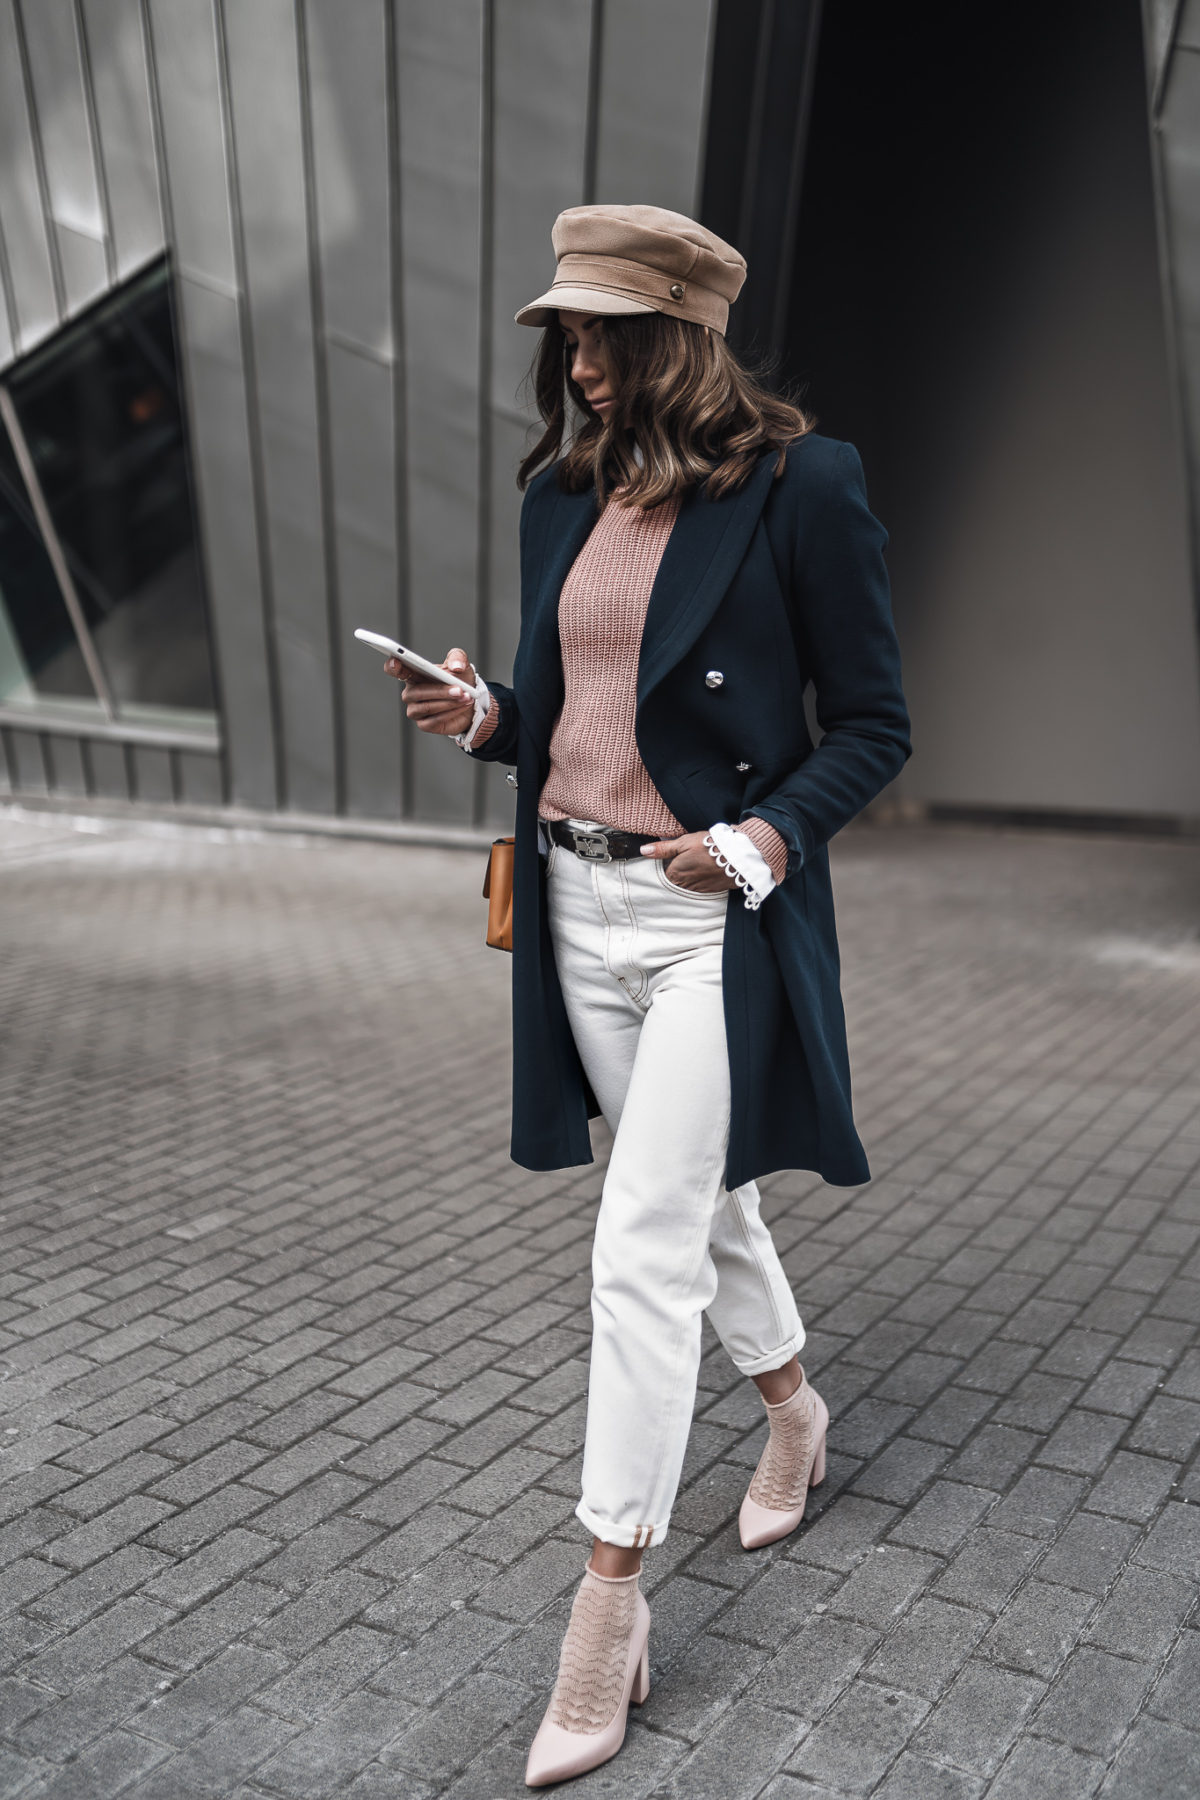 Comfy Coat & High Heels